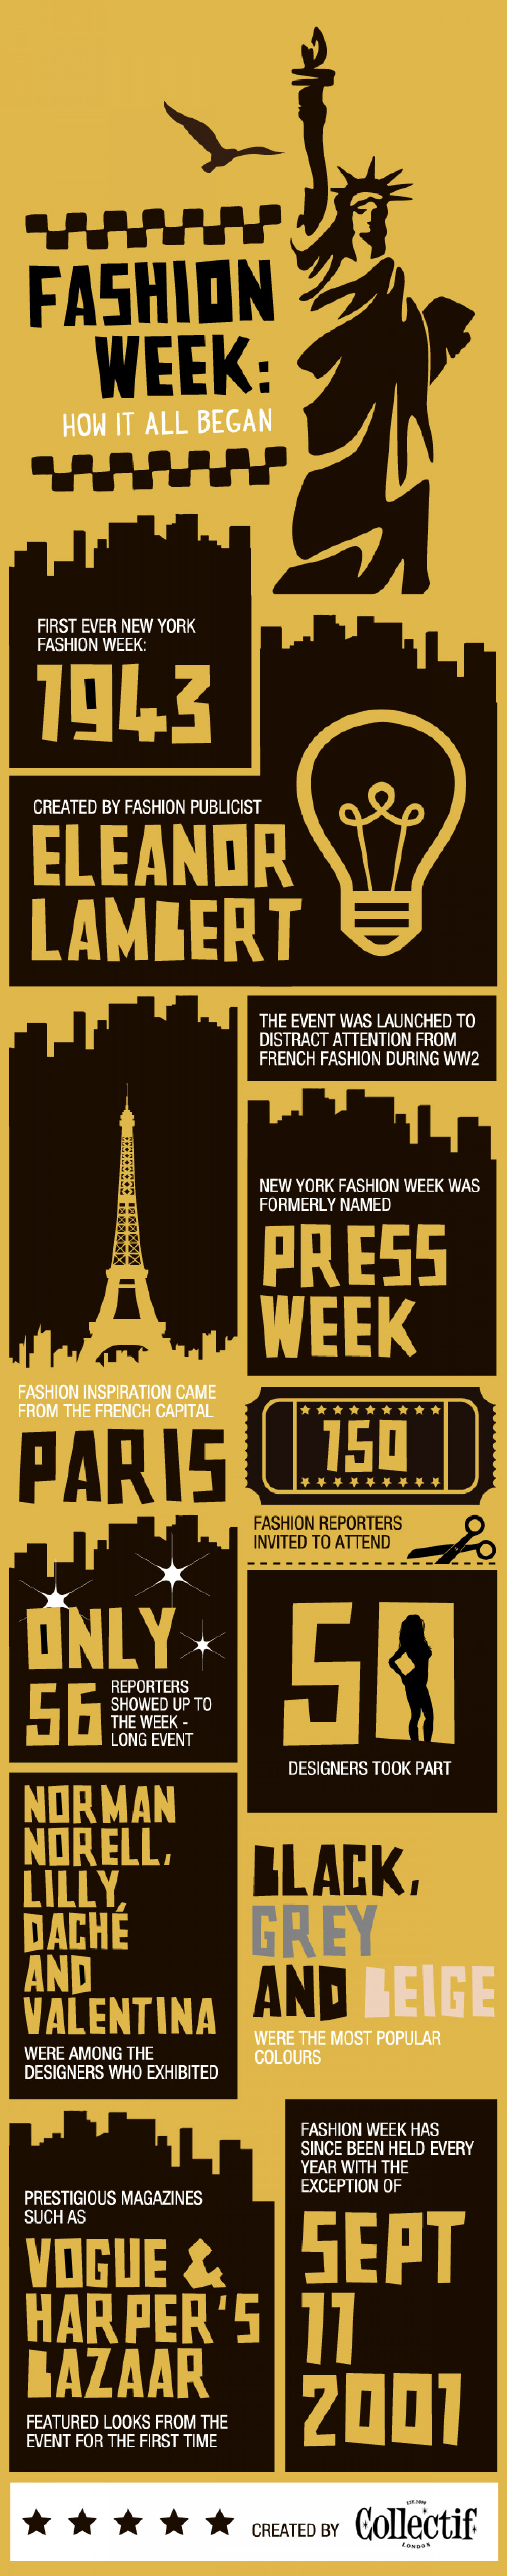 Fashion Week: How It All Began Infographic